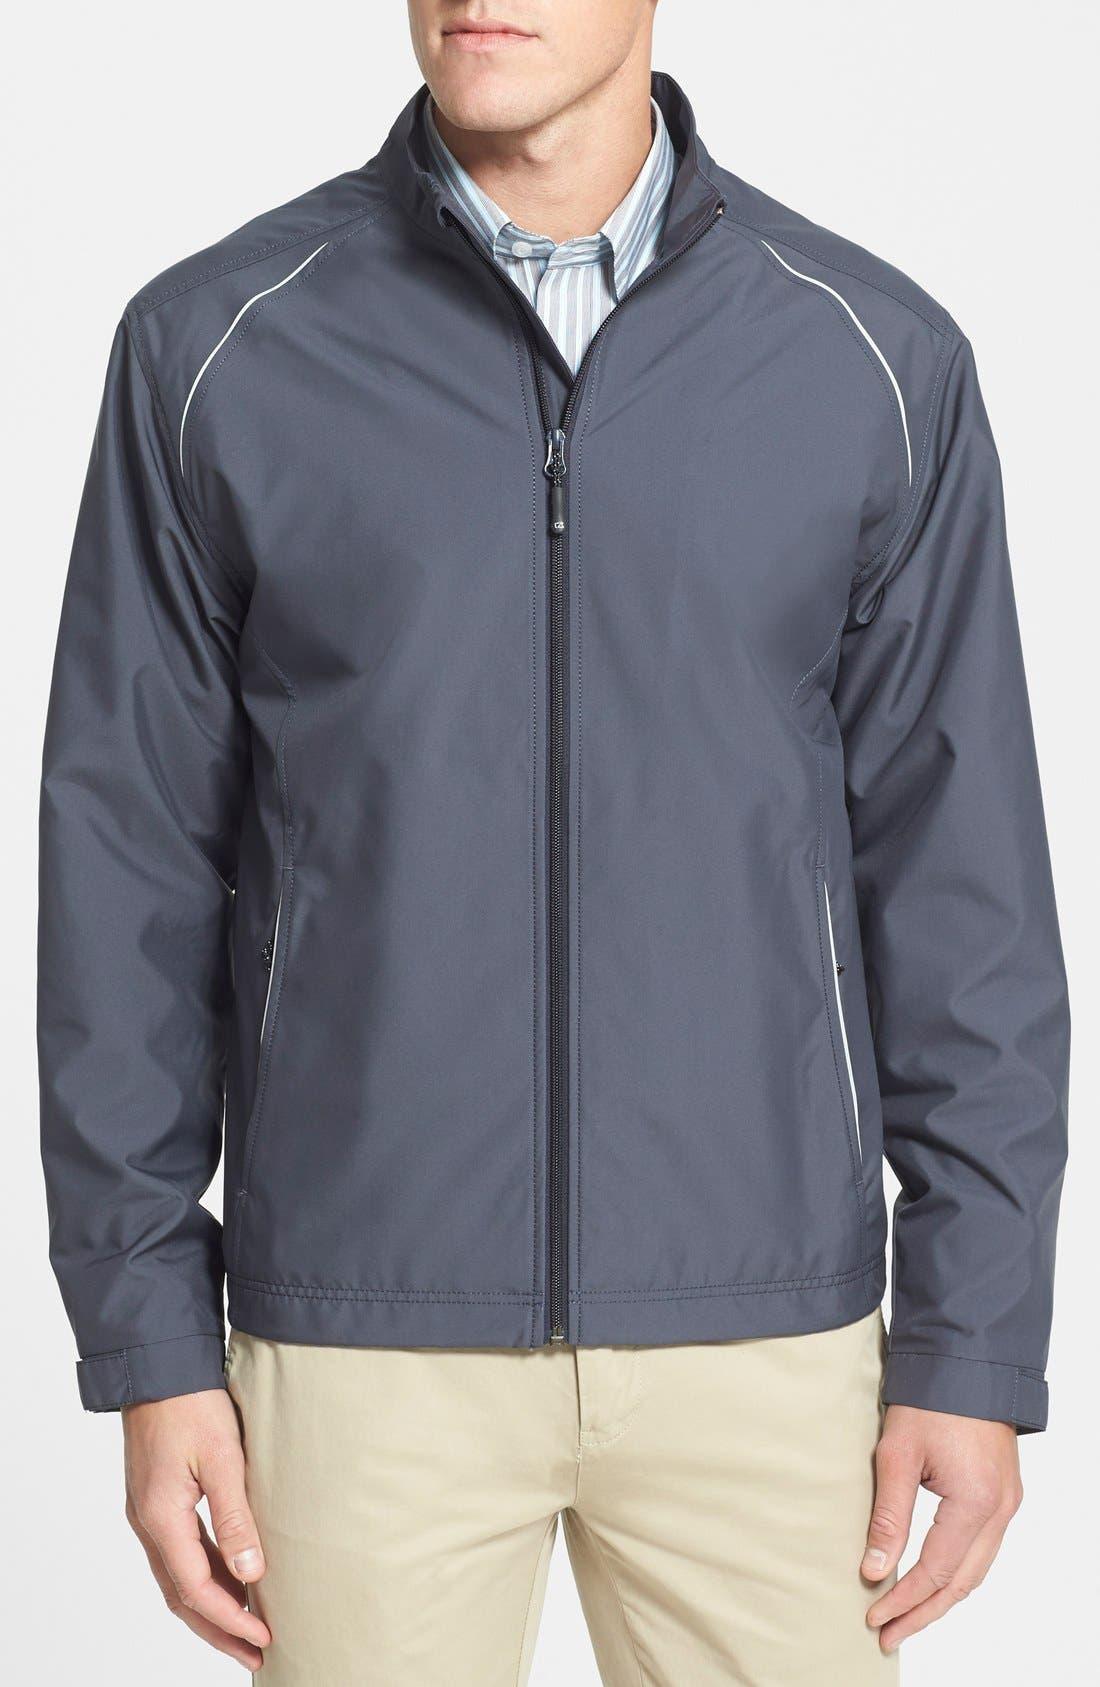 Reflective piping details a lightweight jacket that\\\'s both wind- and water-resistant. Style Name: Cutter & Buck Beacon Weathertec Wind & Water Resistant Jacket. Style Number: 876886 1. Available in stores.